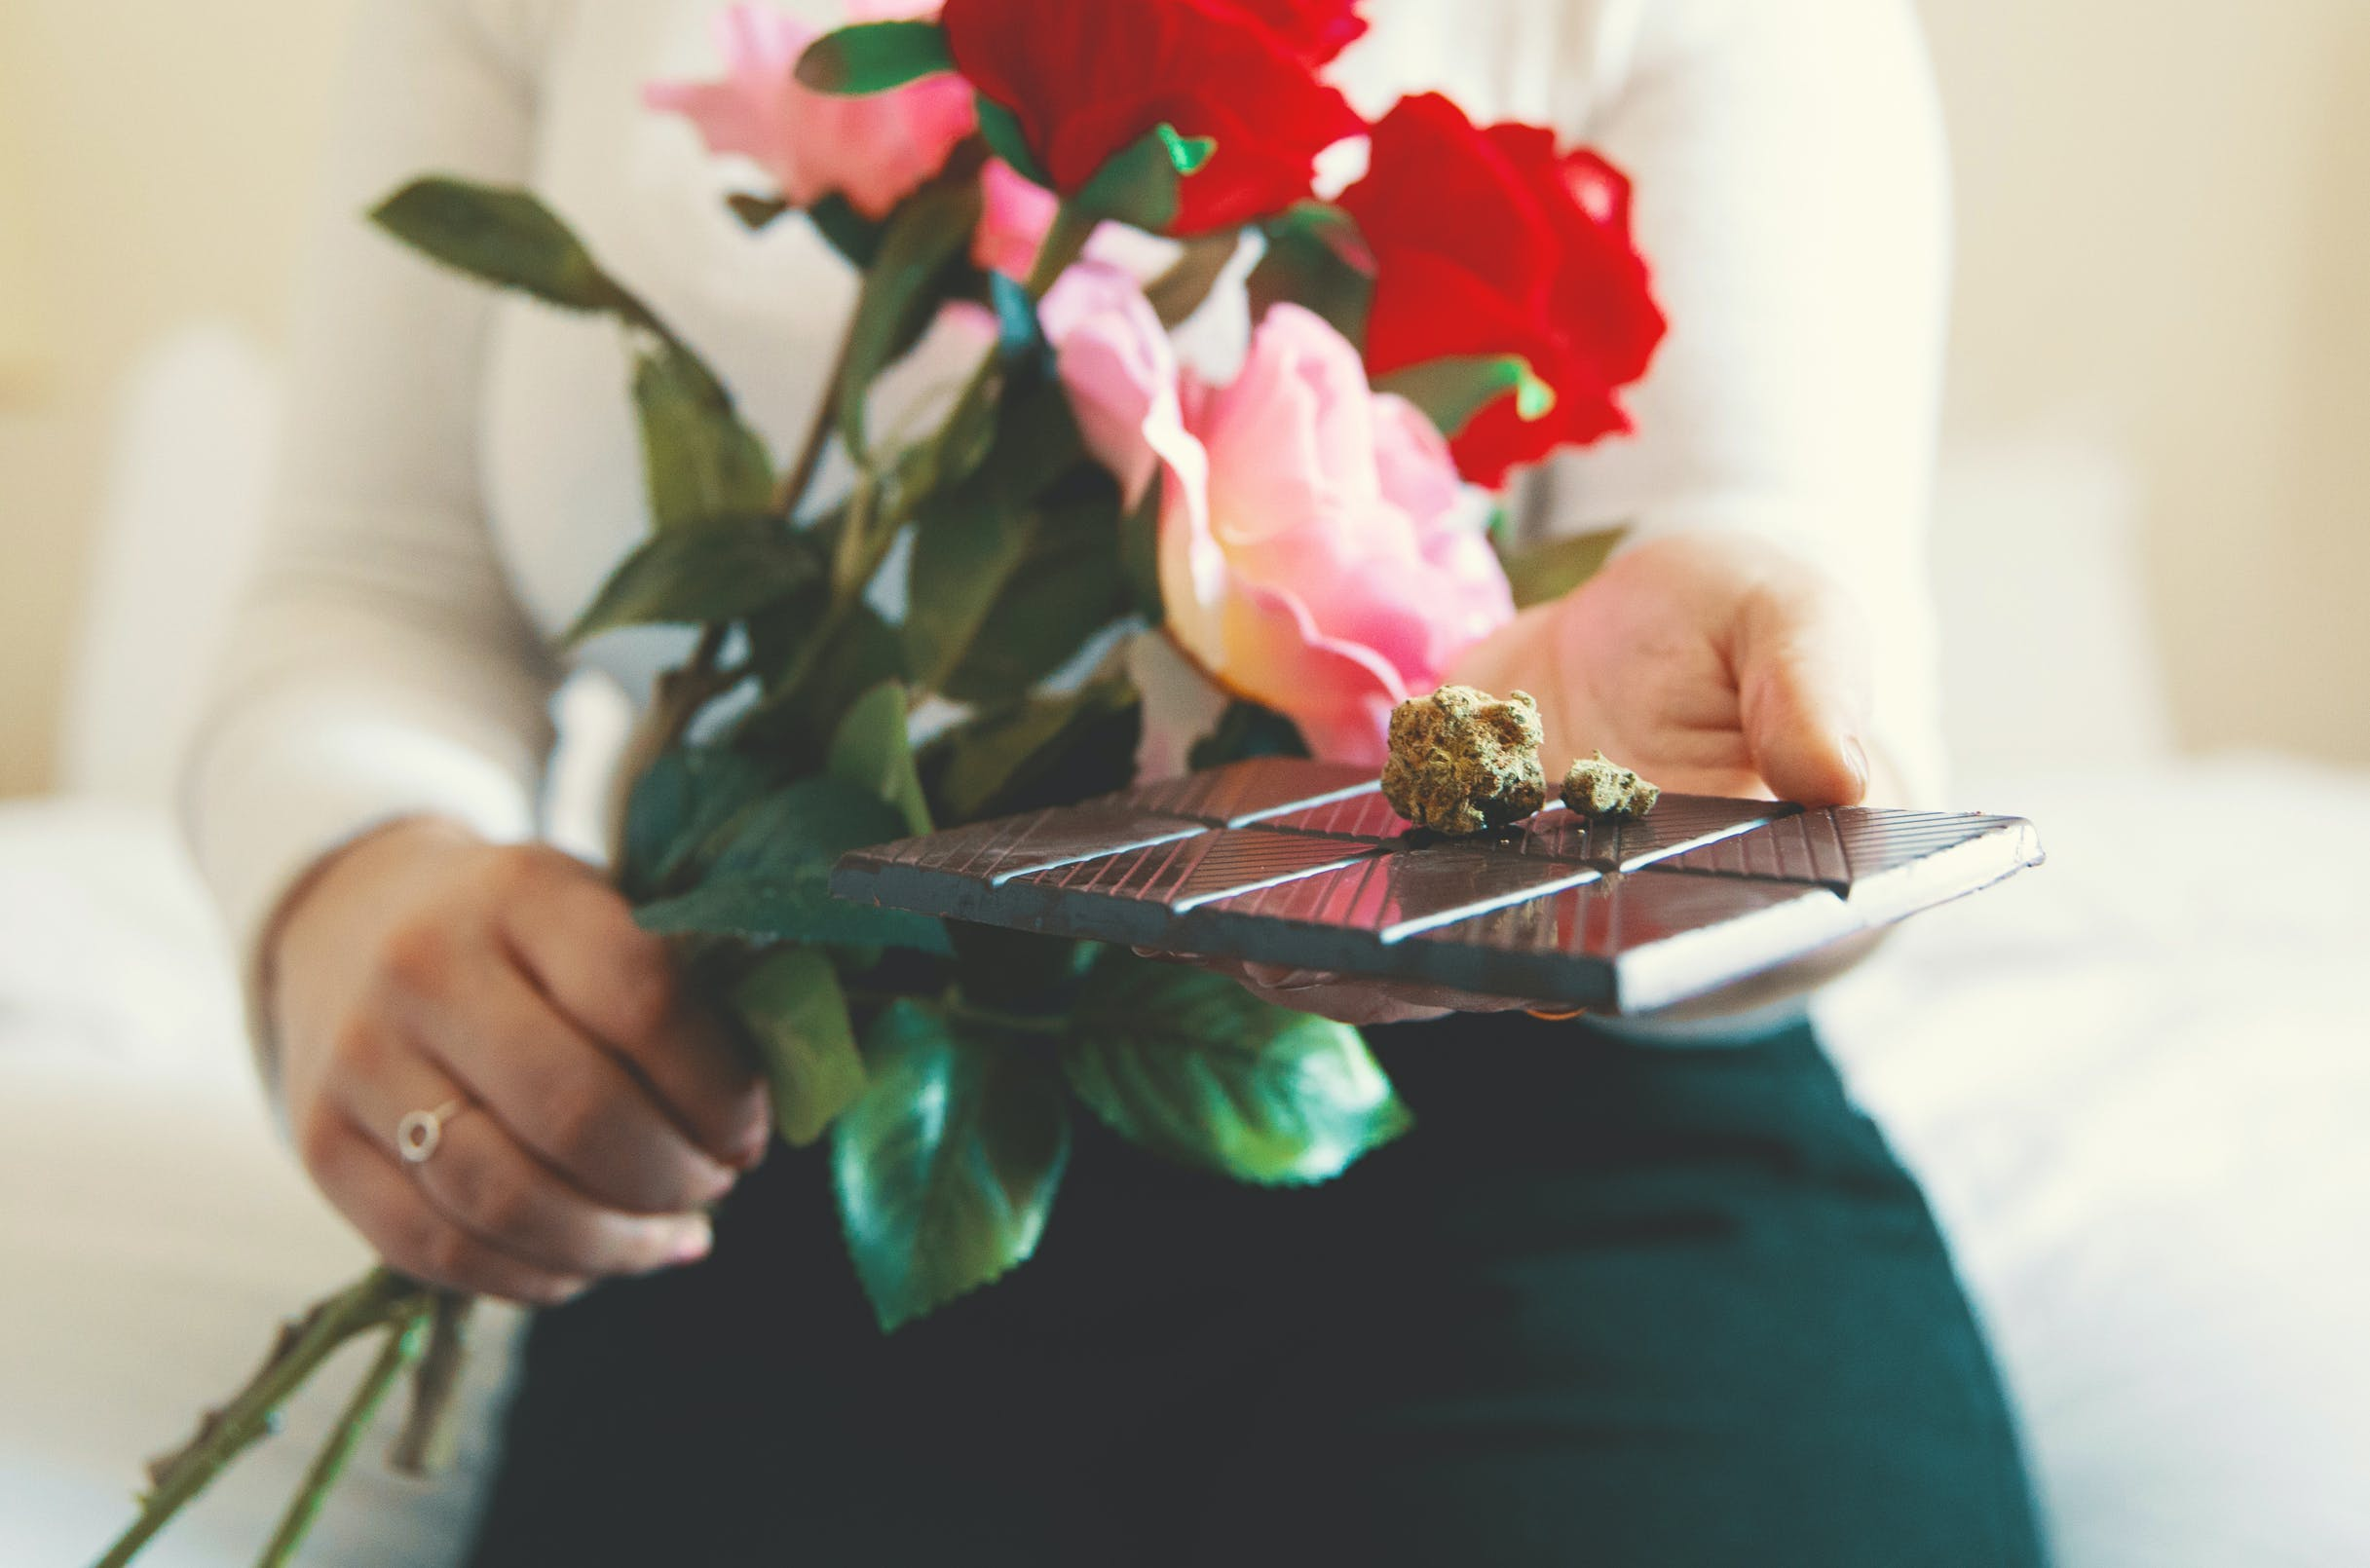 How to make weed chocolate: A woman holds a bouquet of roses with some dark chocolate and a nug of weed